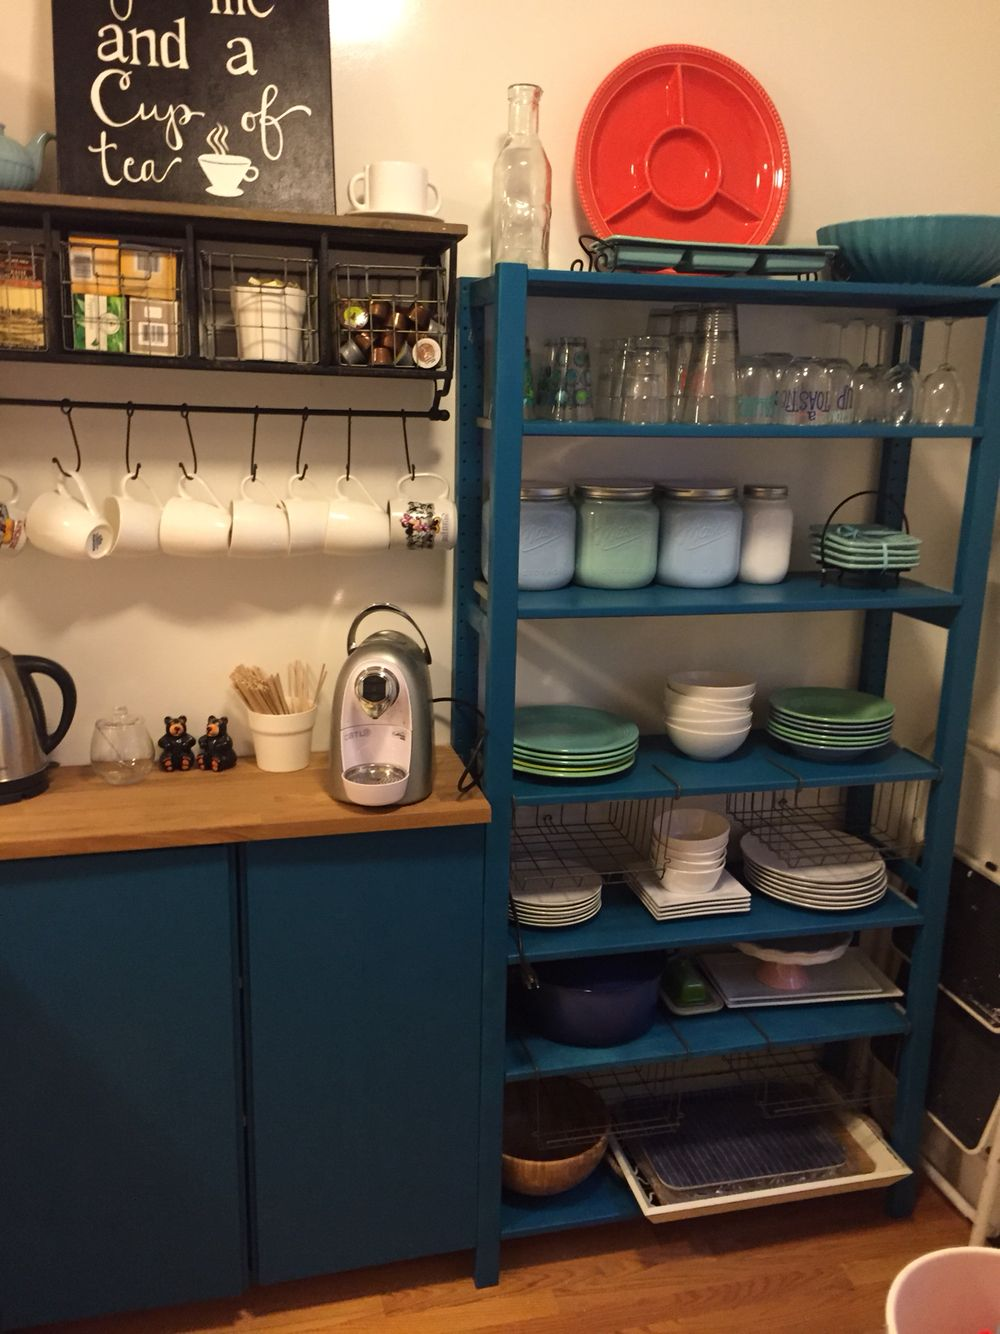 Stylish Ikea Ivar kitchen storage unit in blue. | Heimili ...